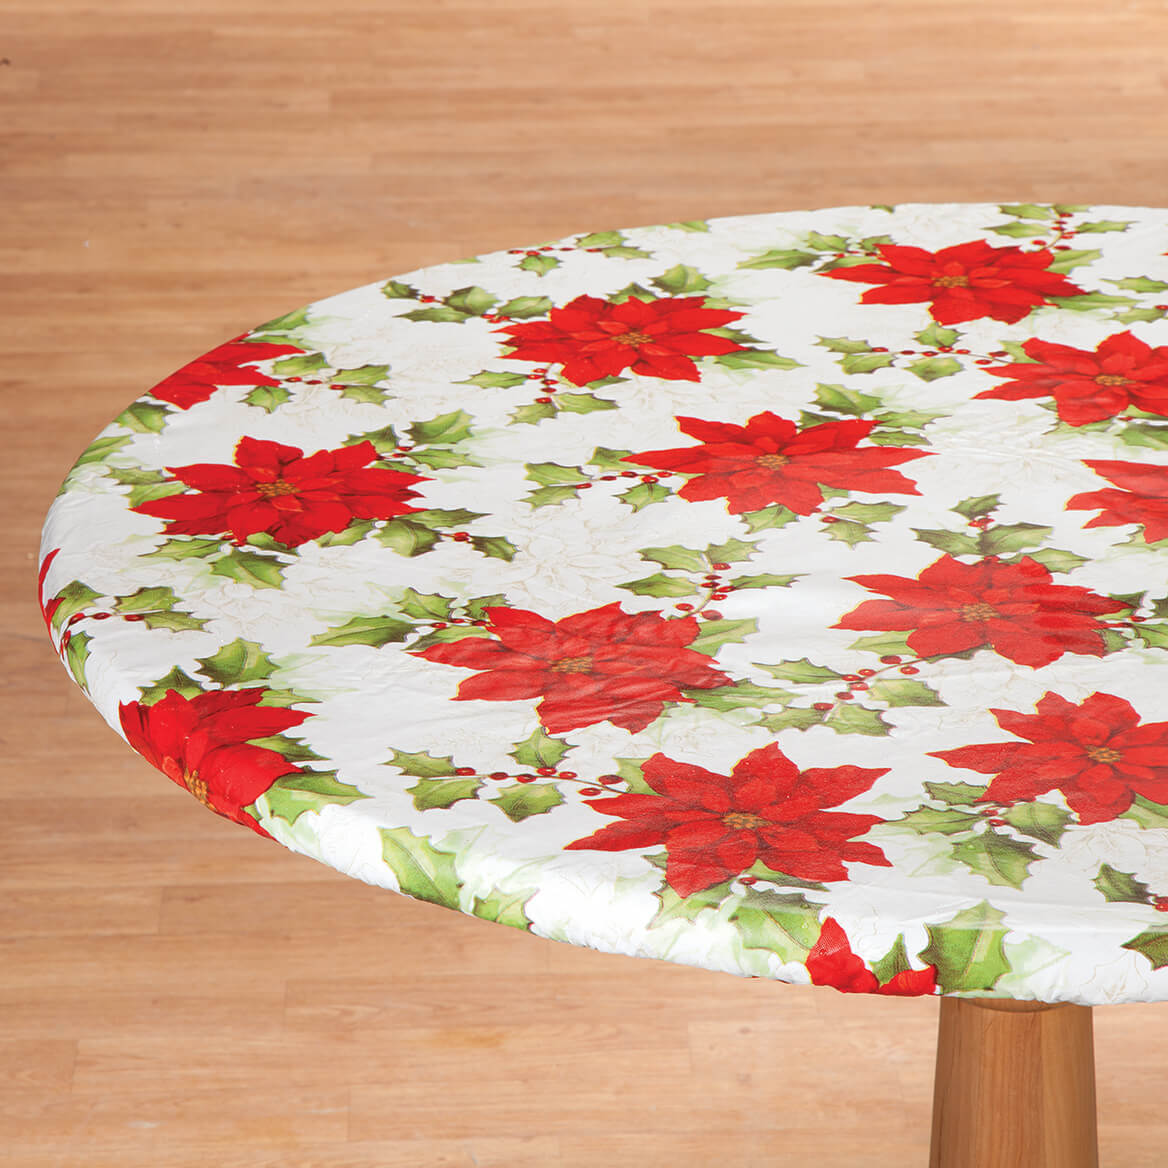 Poinsettia Elasticized Vinyl Tablecover by Chef's Pride-368337